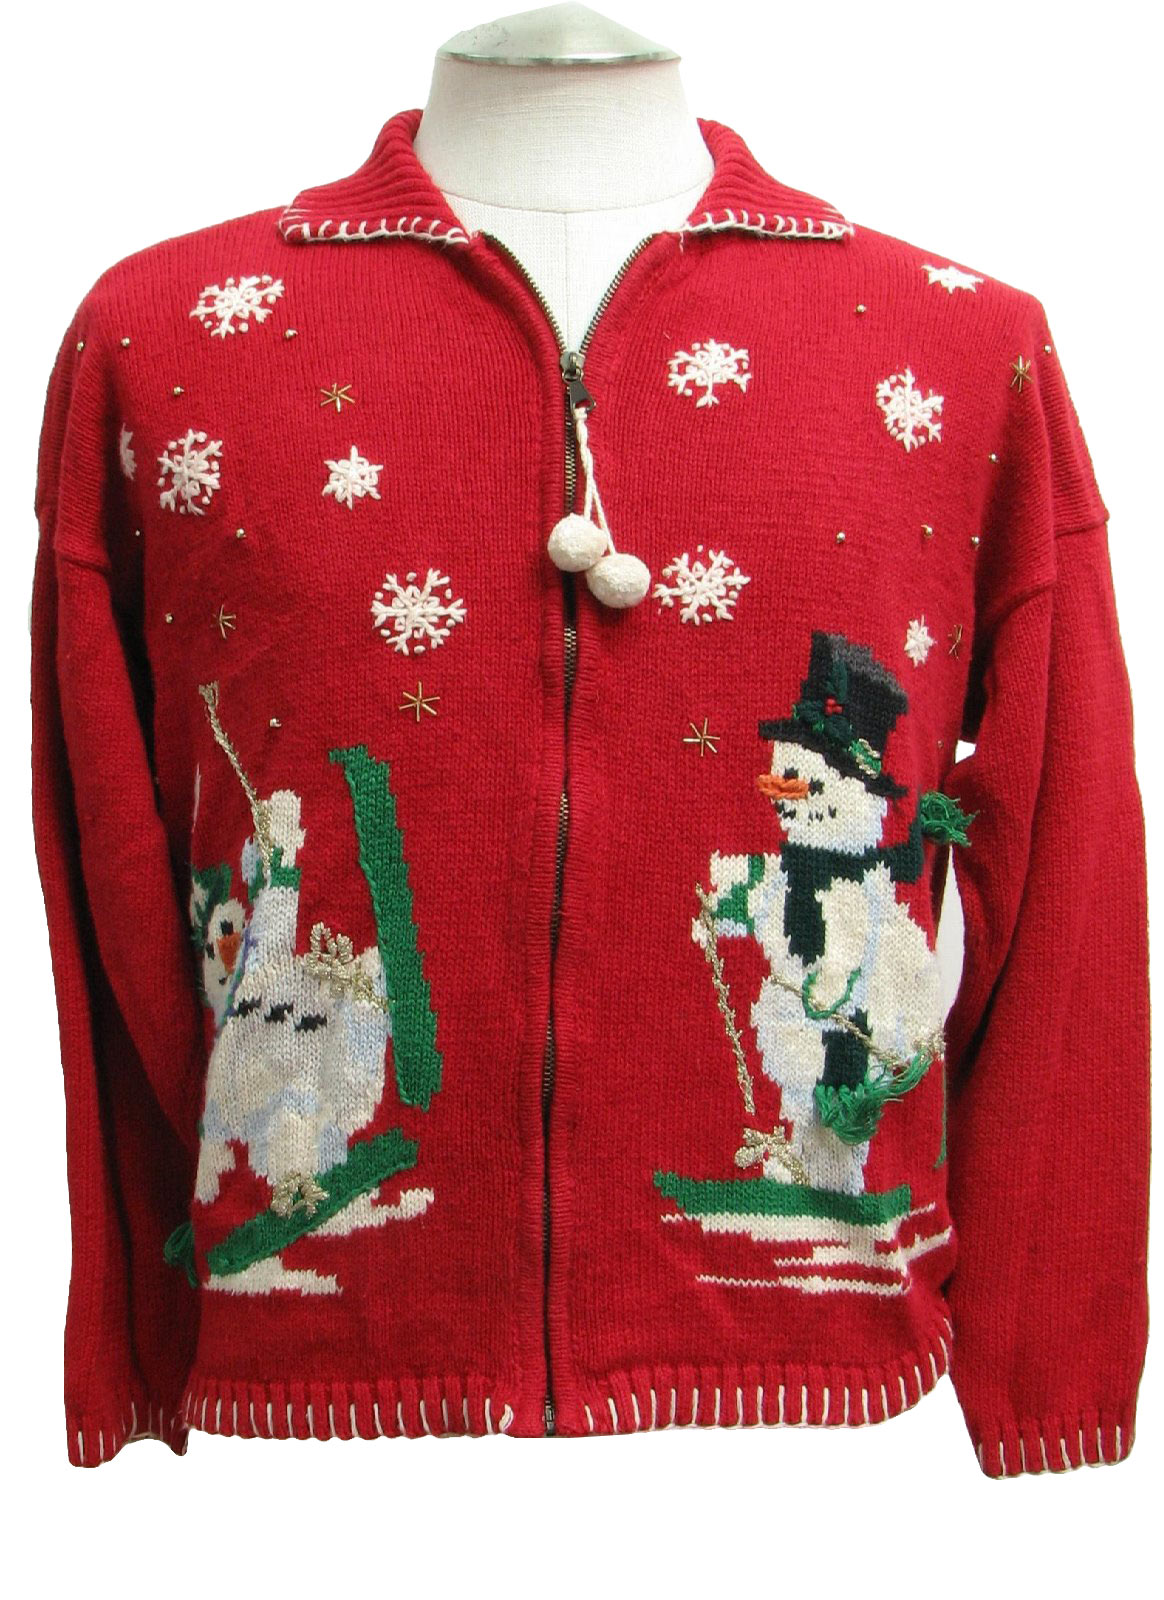 Ugly christmas sweater carly st claire unisex red for Over the top ugly christmas sweaters